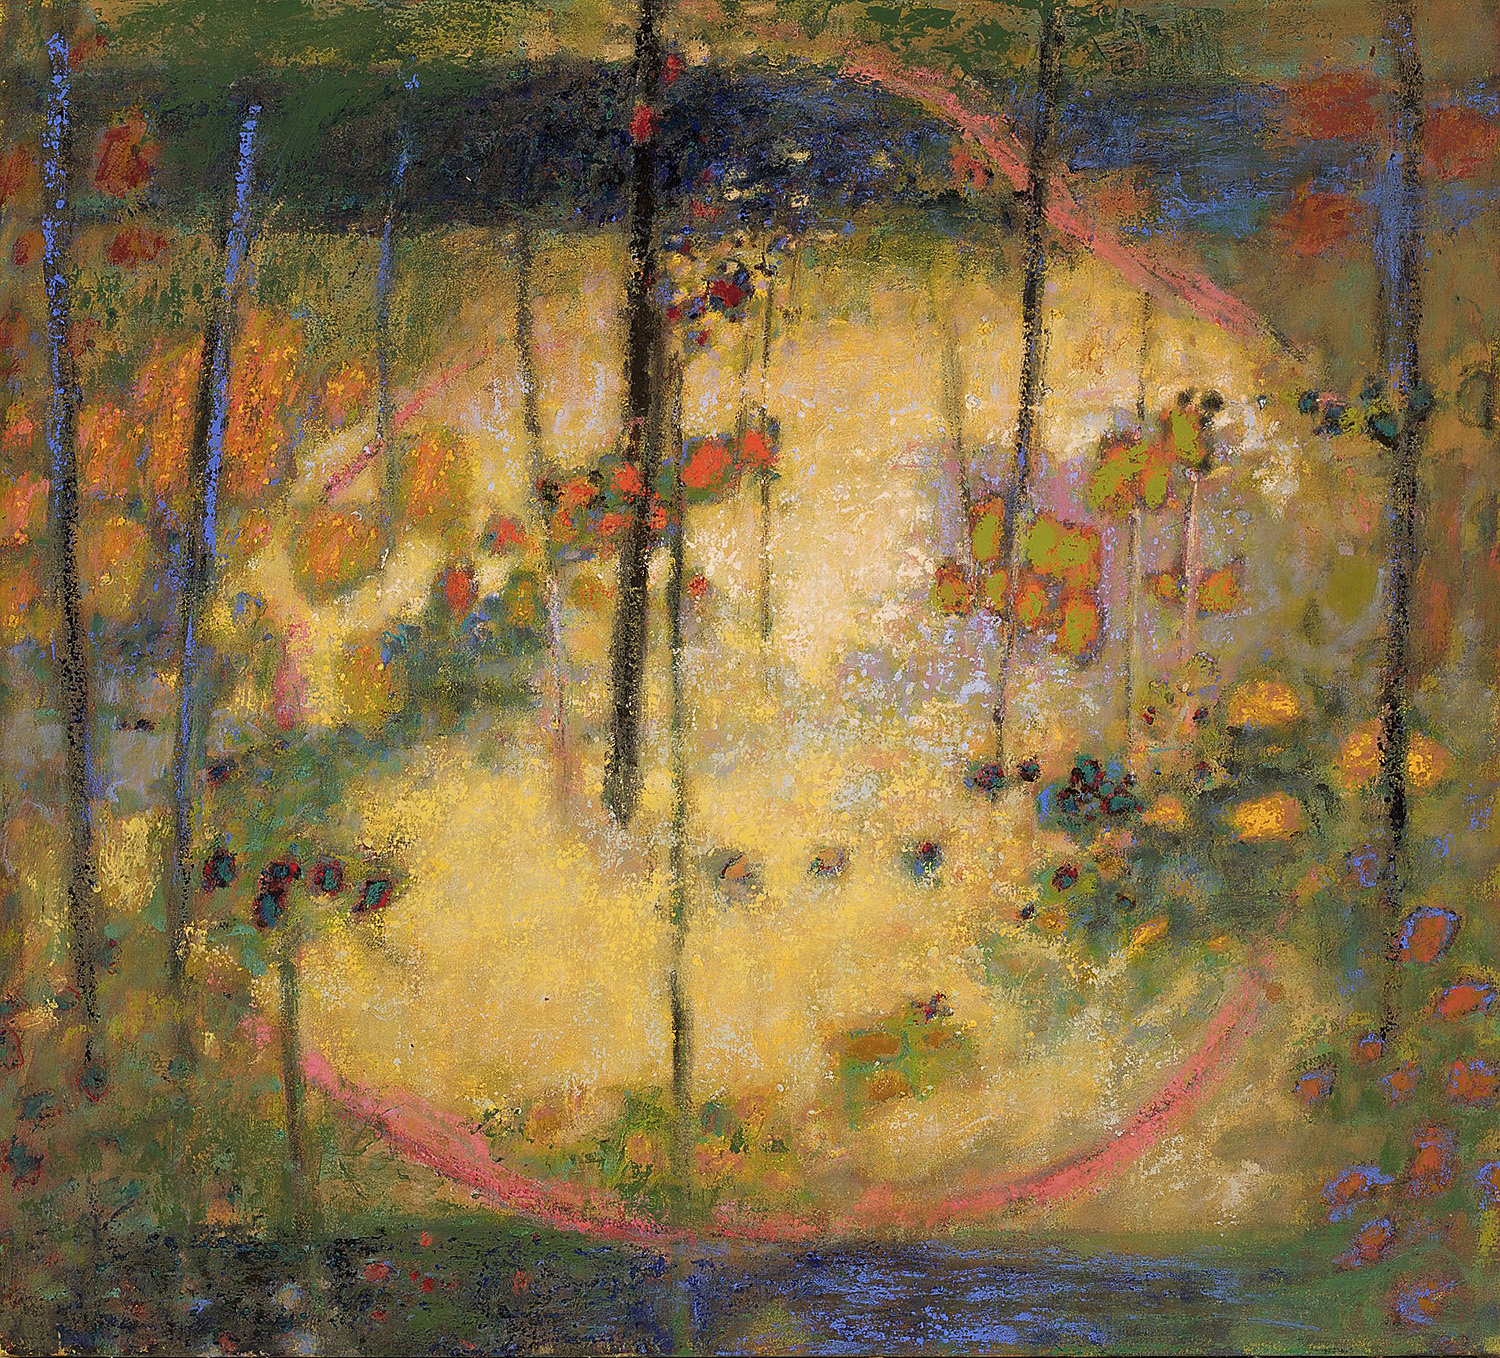 Dream of the Butterfly   | oil on canvas | 36 x 40"